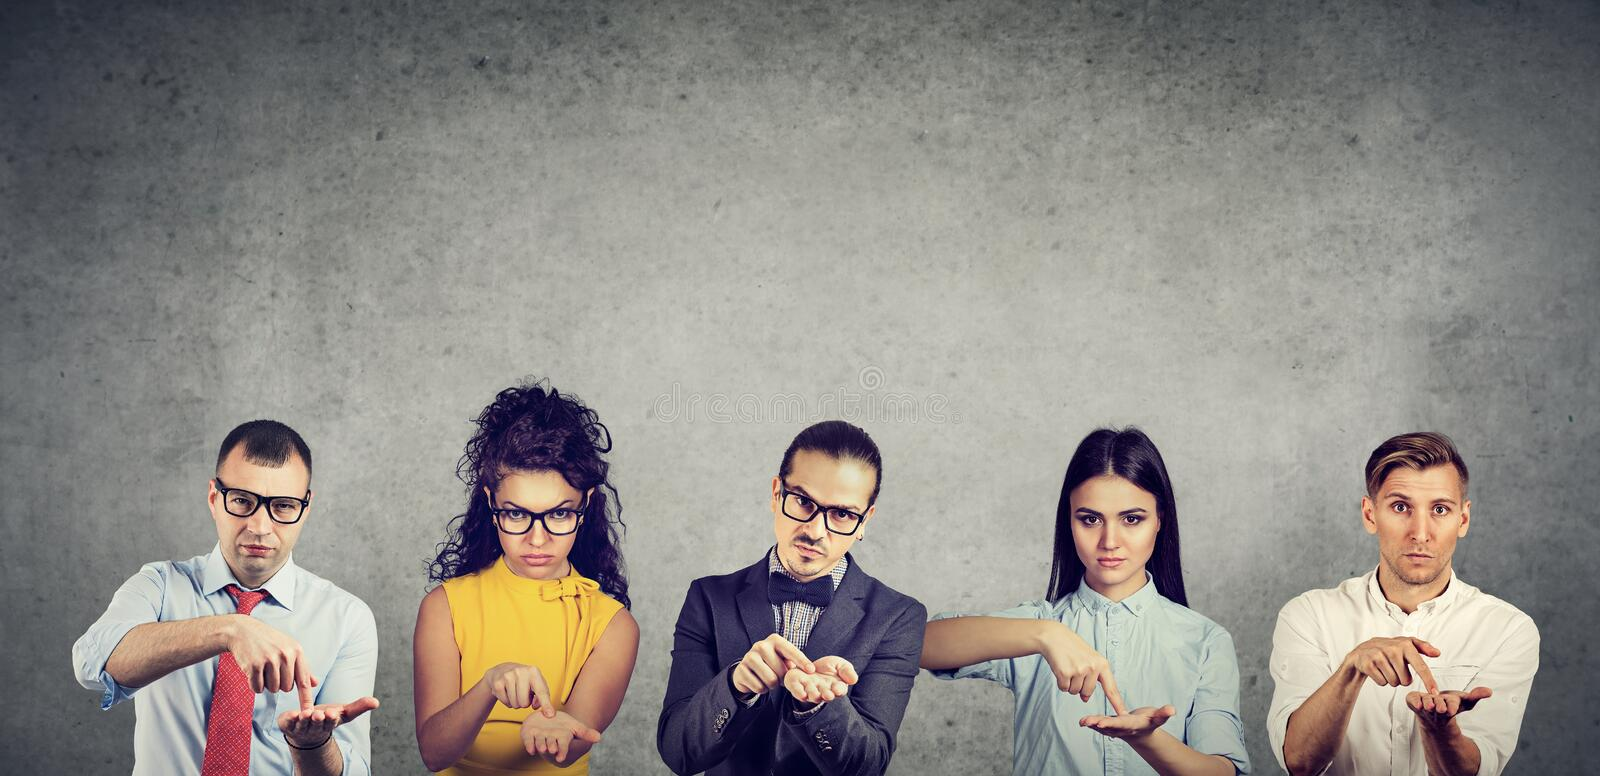 Group of serious business people men and women asking for more money stock images